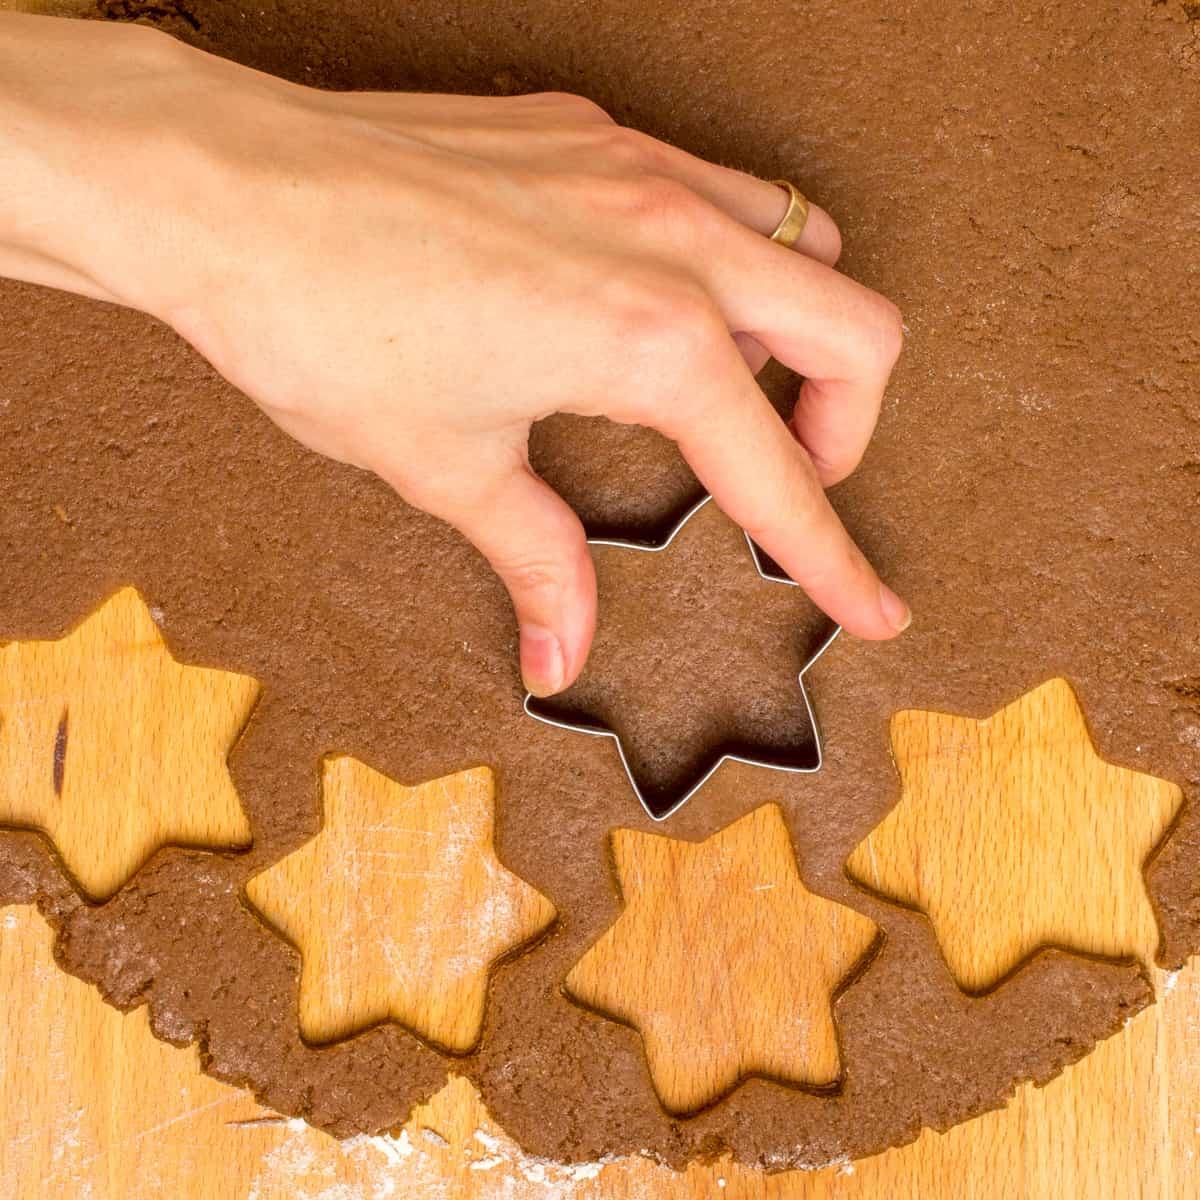 A hand cuts out stars from the rolled out dough.